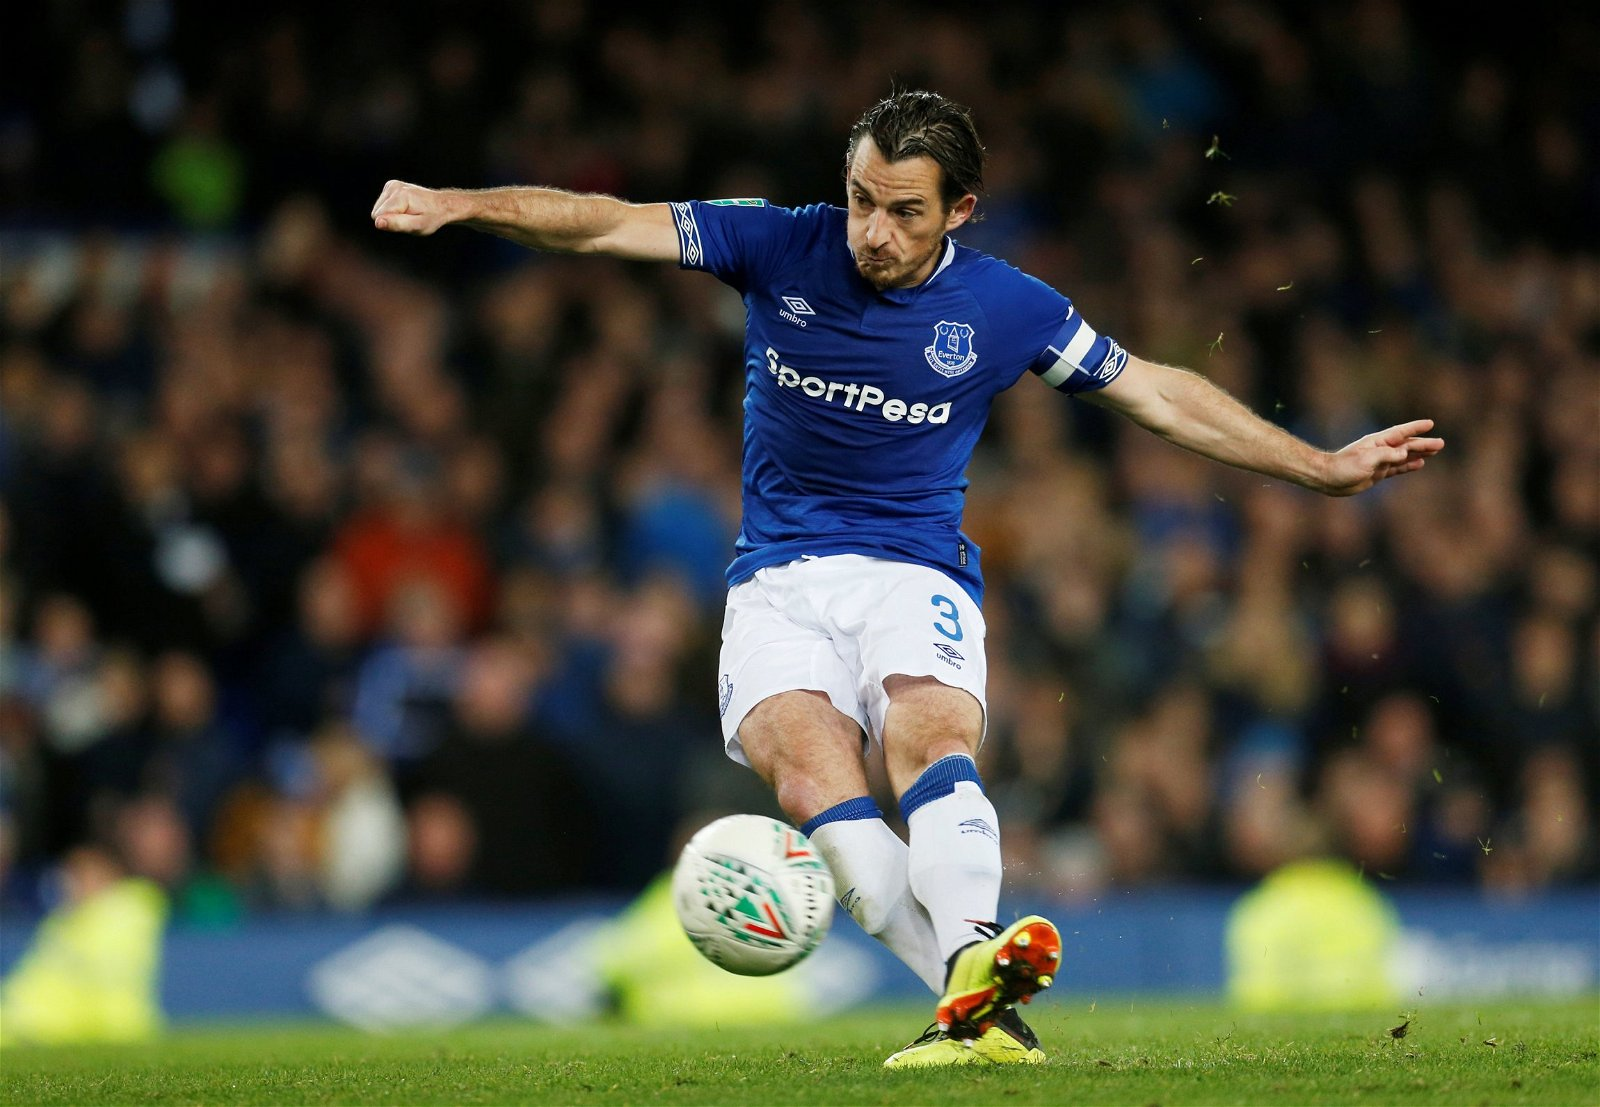 Everton's Leighton Baines scores a penalty during the cup shootout with Southampton